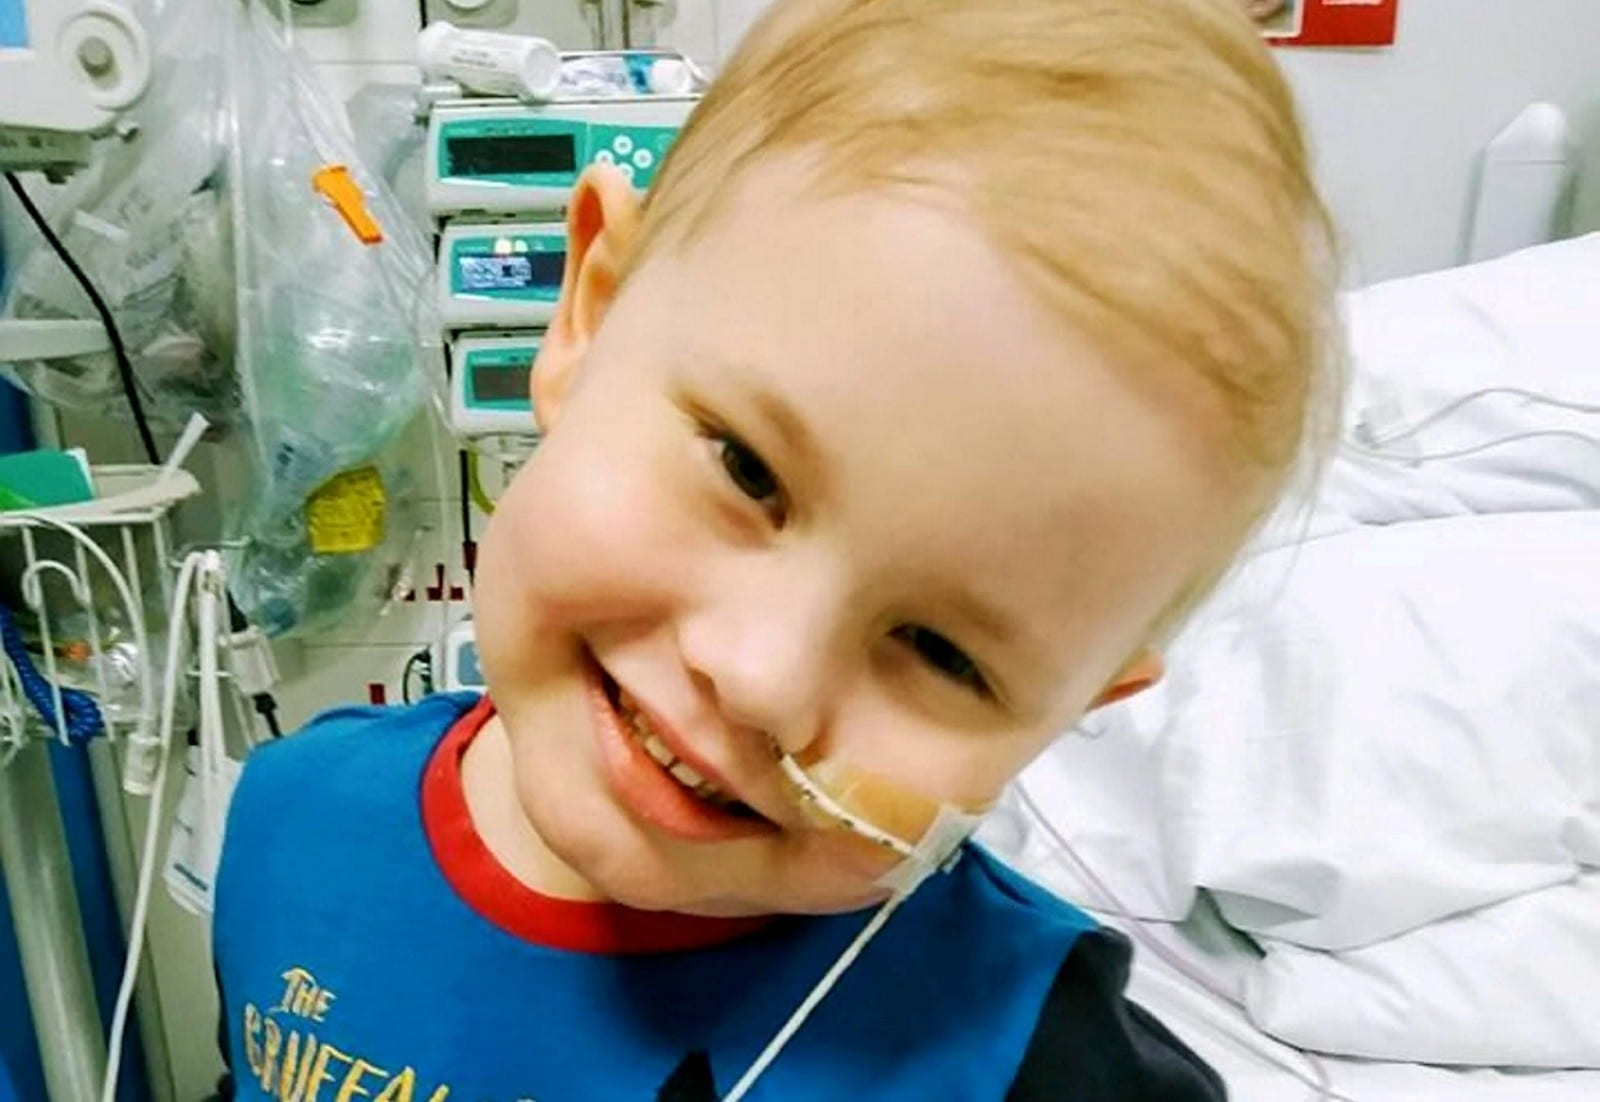 'This Is A Miracle' – Parents Of Five-Year-Old Leukaemia Patient Oscar Saxelby-Lee Reveal He Is Cancer Free Following Treatment In Singapore